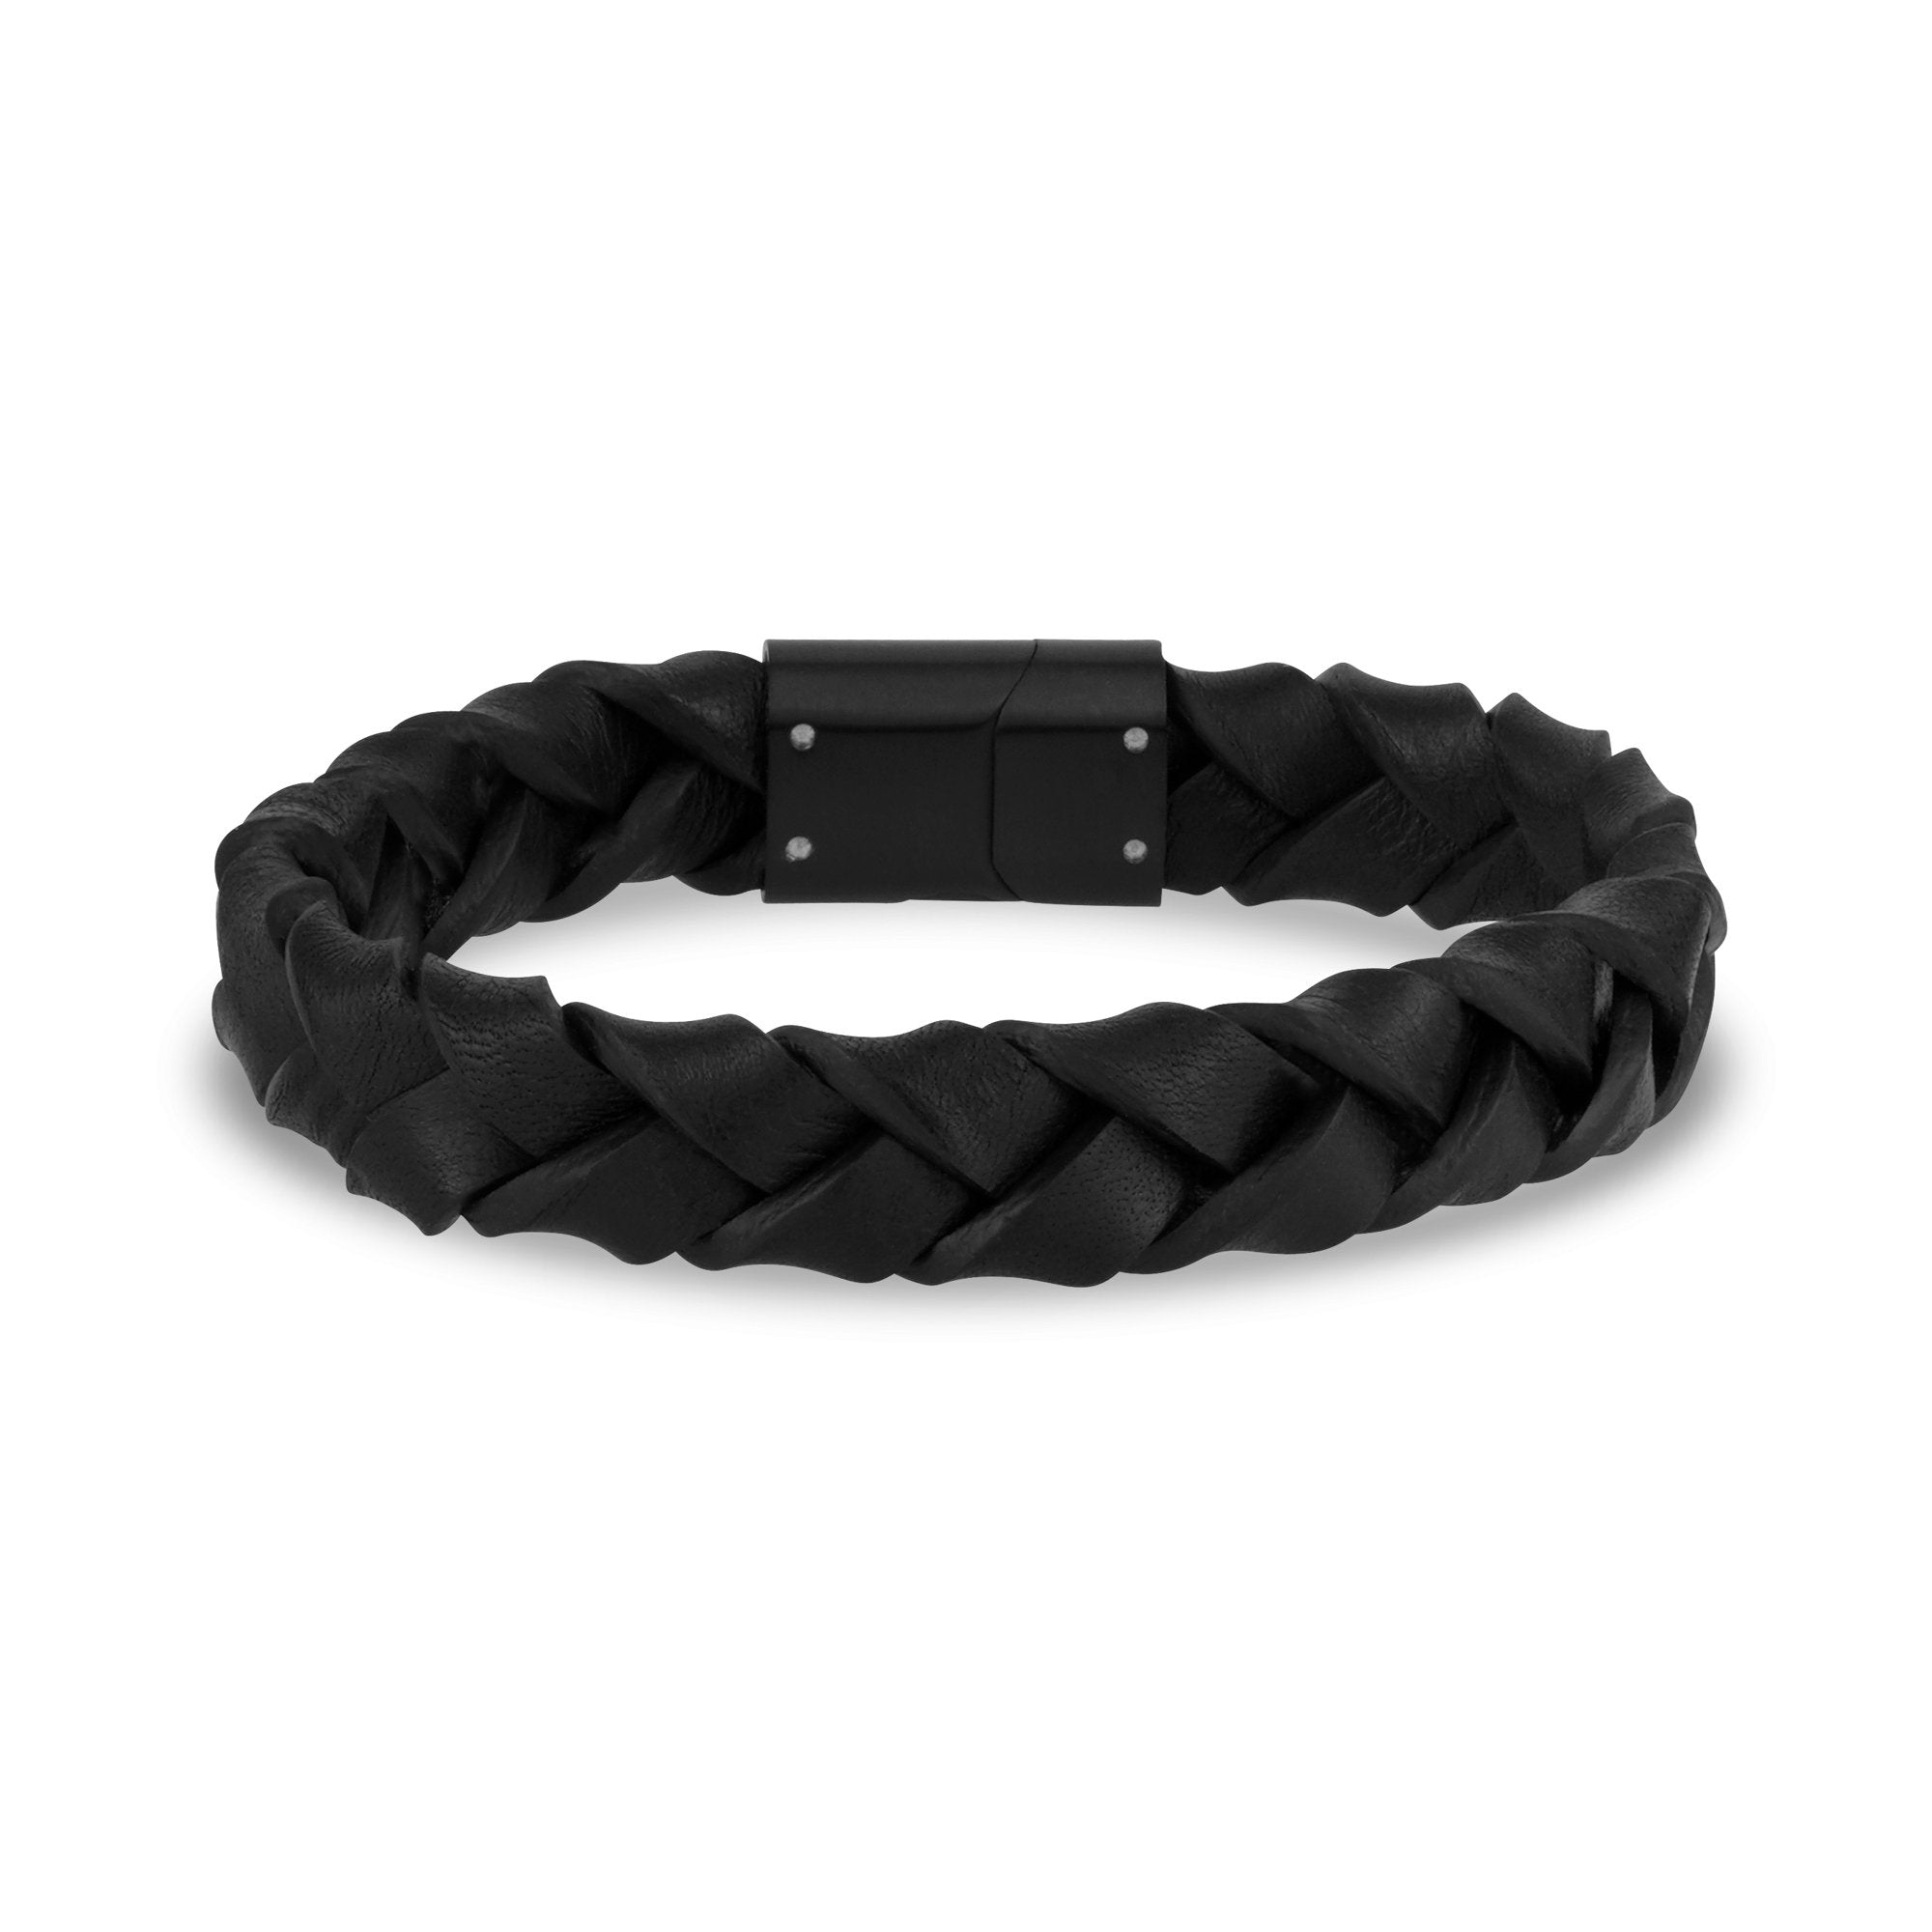 Mens Steel Leather Bracelets - 11mm Woven Black Leather Steel Clasp Engravable Bracelet